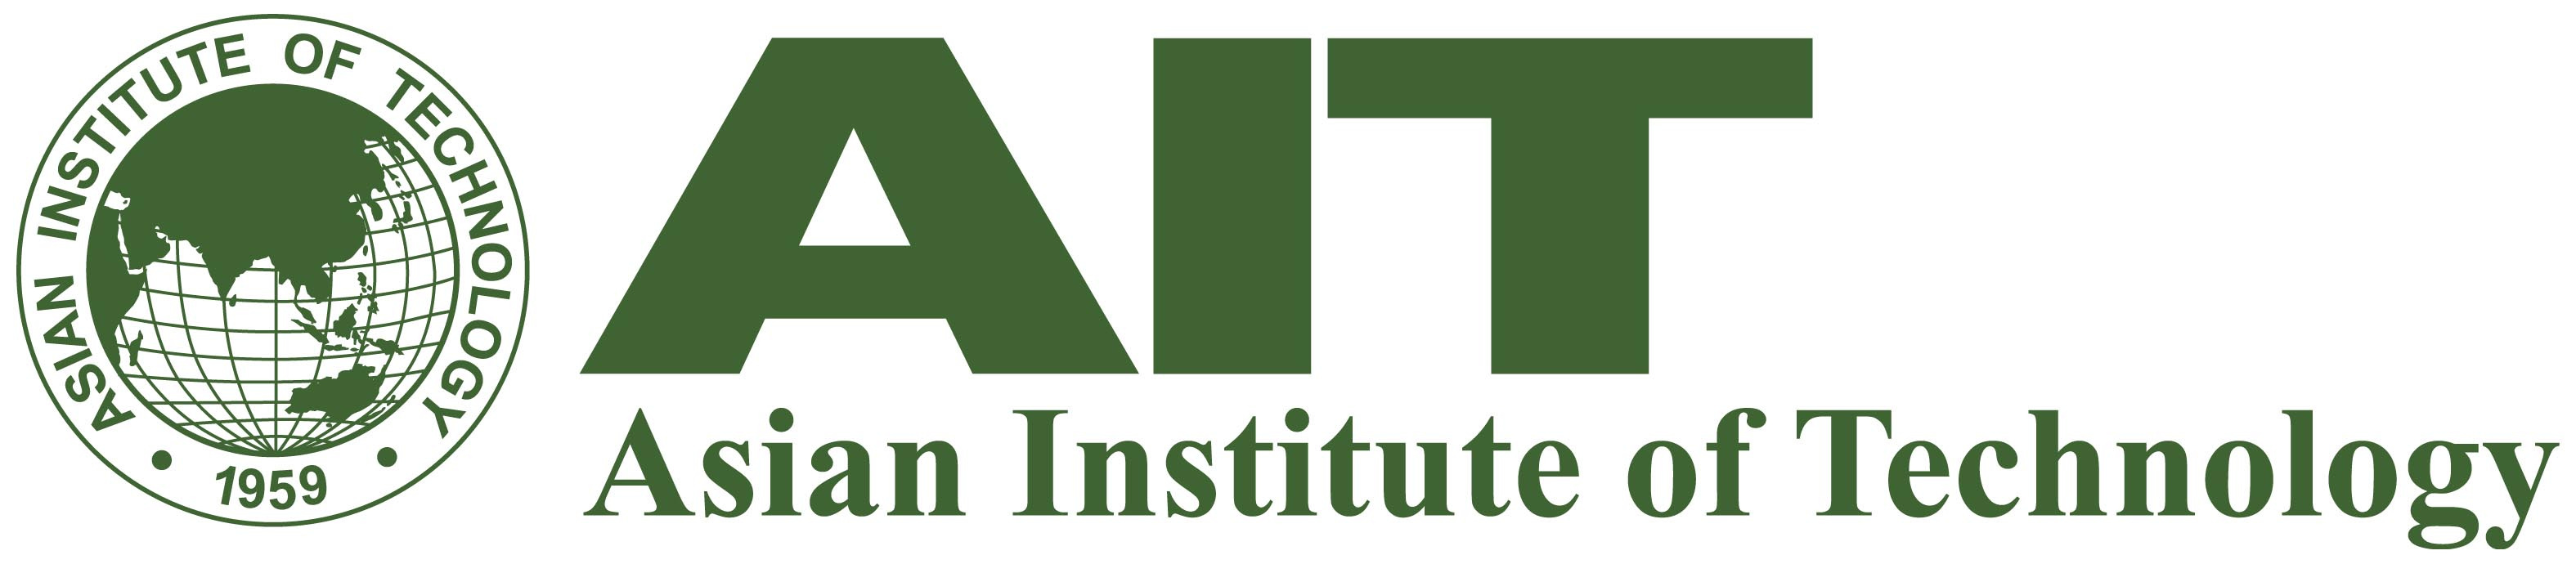 Logo of Asian Institute of Technology (AIT)